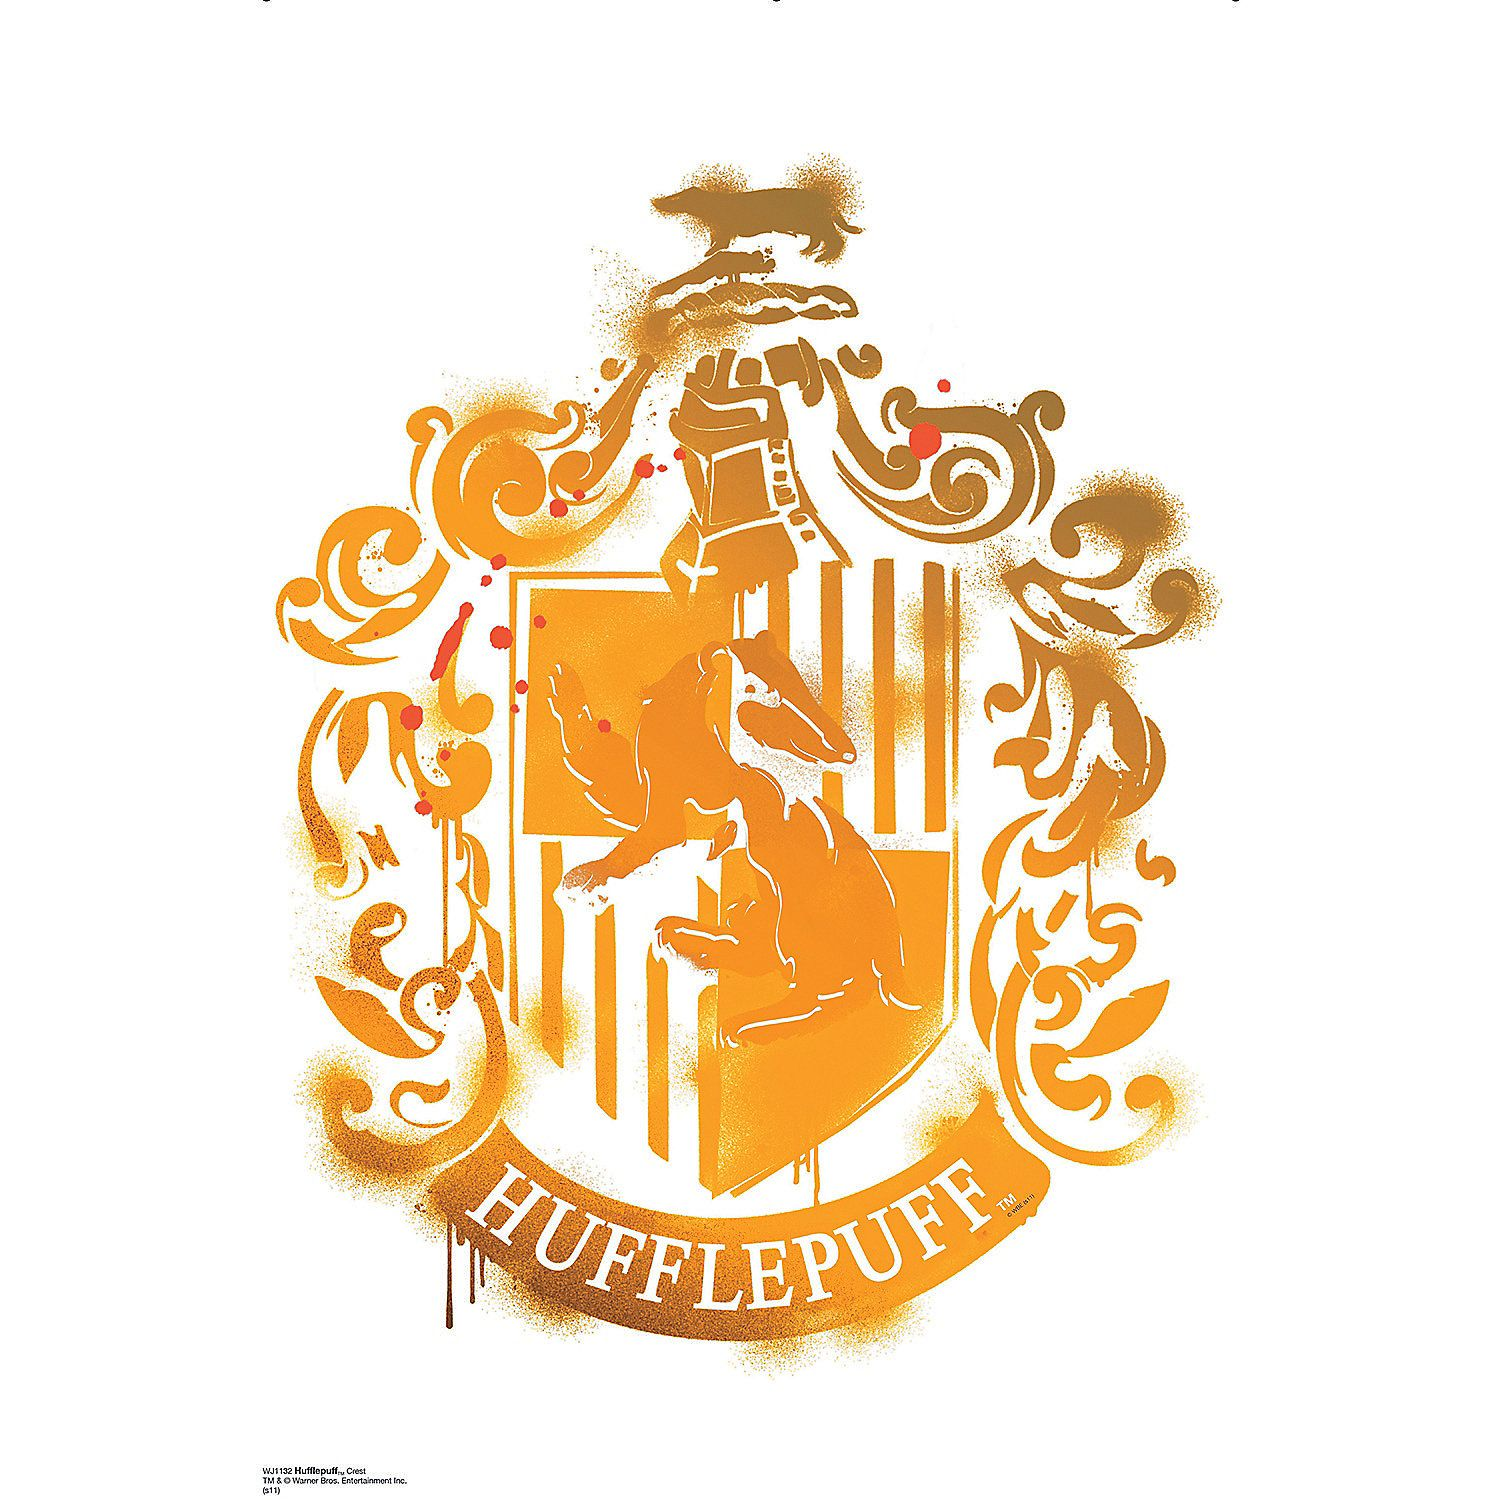 Hufflepuff Crest - Harry Potter 7 Wall Jammer™ Wall Decal   Harry ...